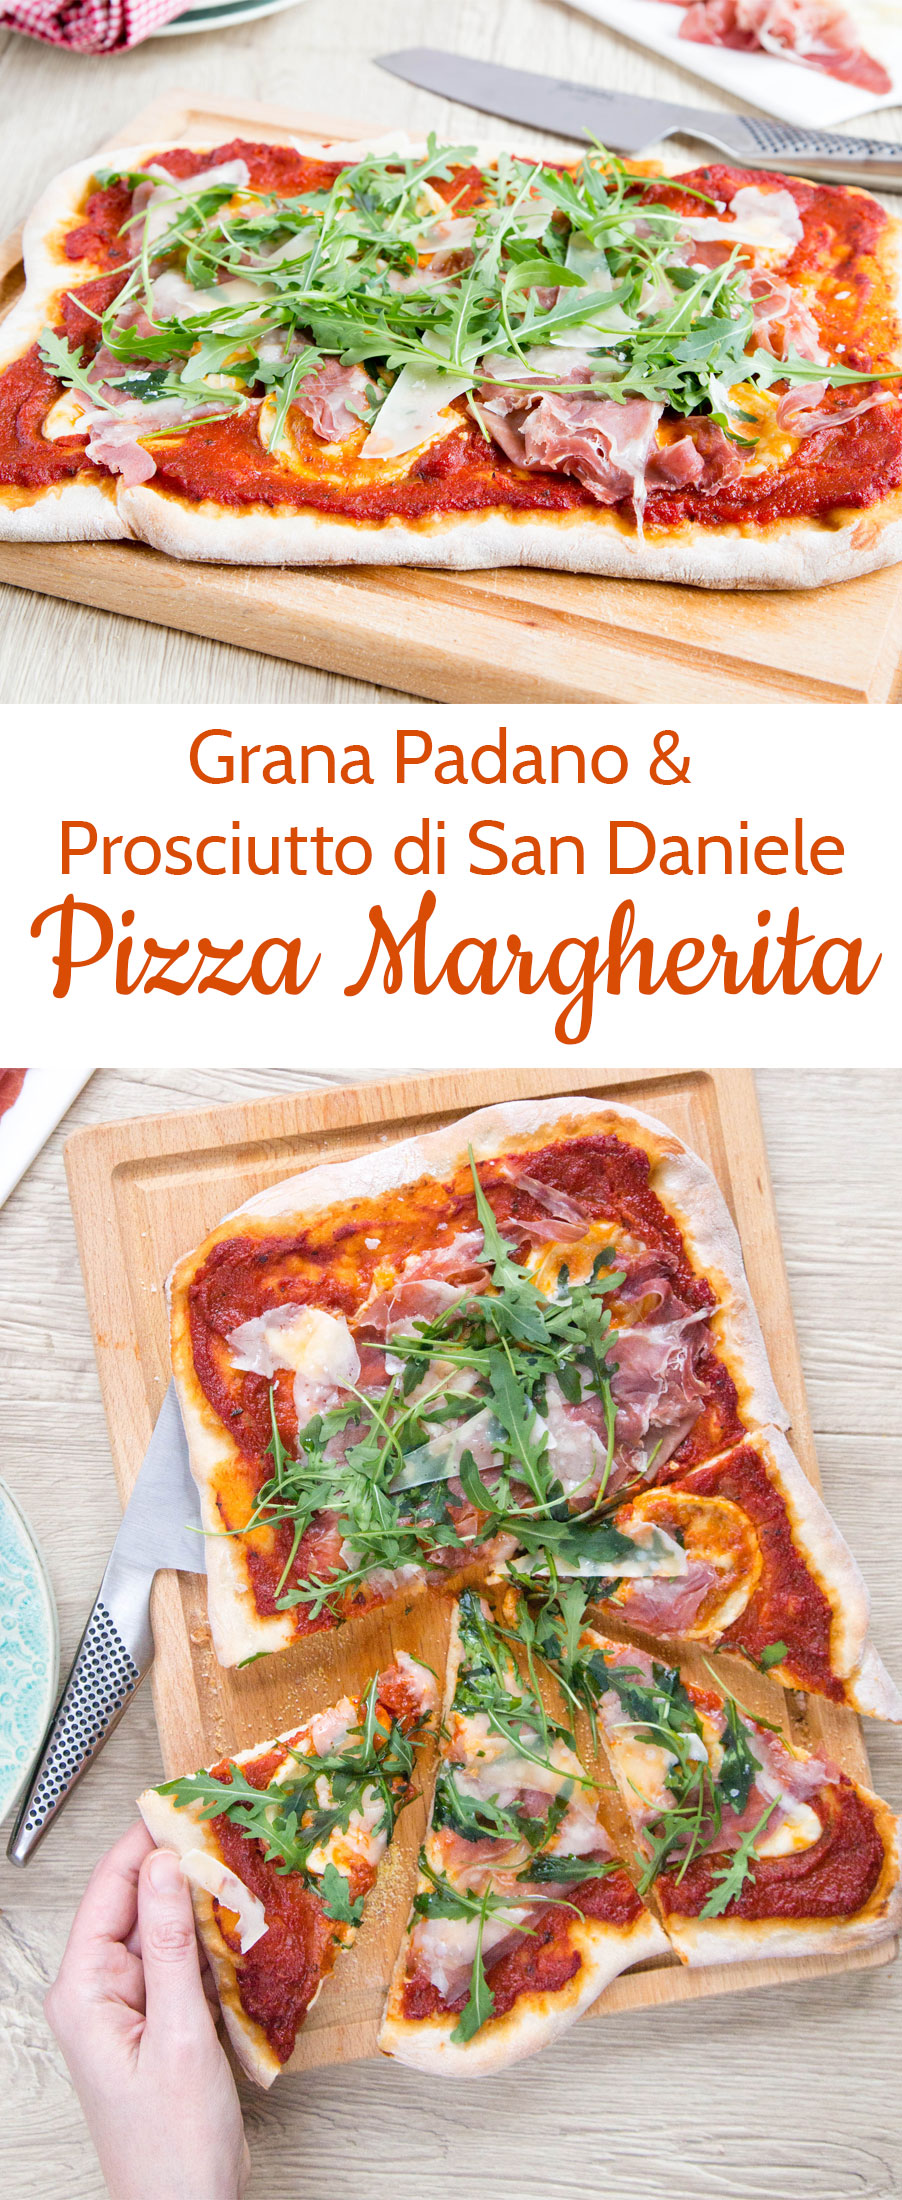 Deliver your own treat with a home made pizza with Grana Padano and Prosciutto di San Daniele